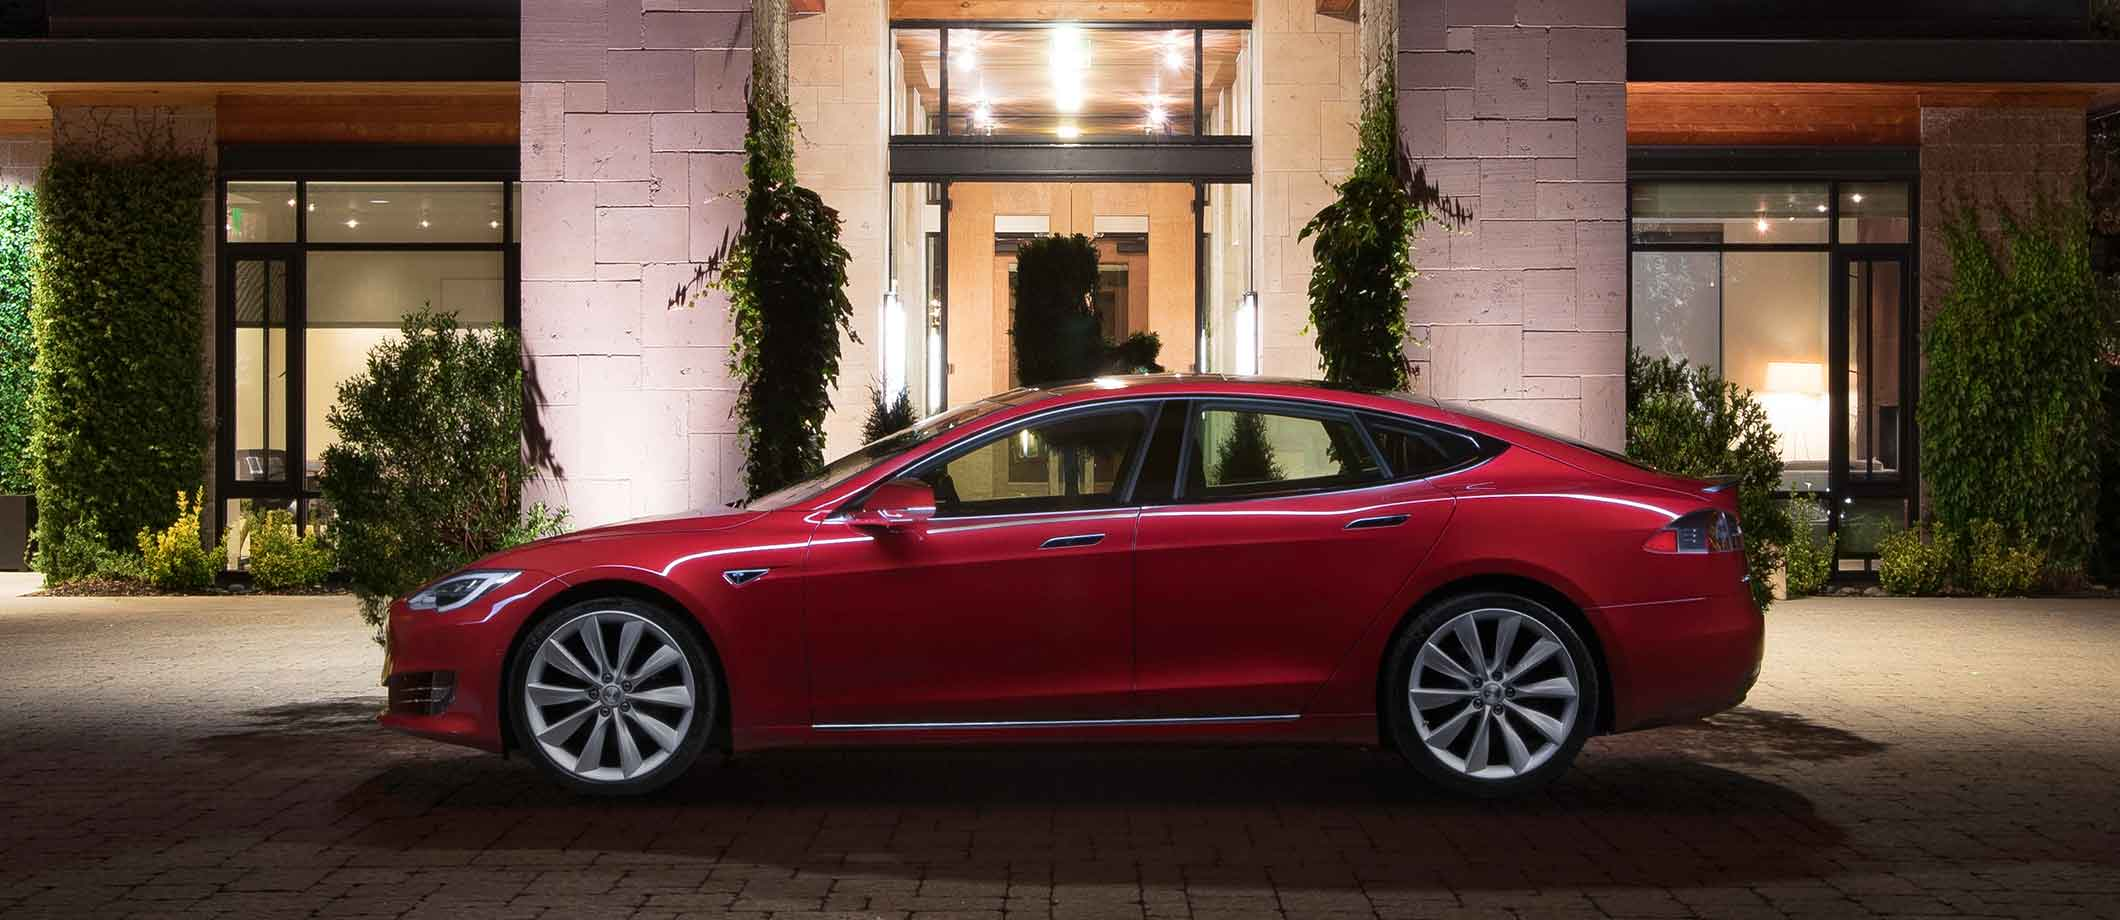 Ontario Improves Electric Vehicle Affordability With Rebate Boosts